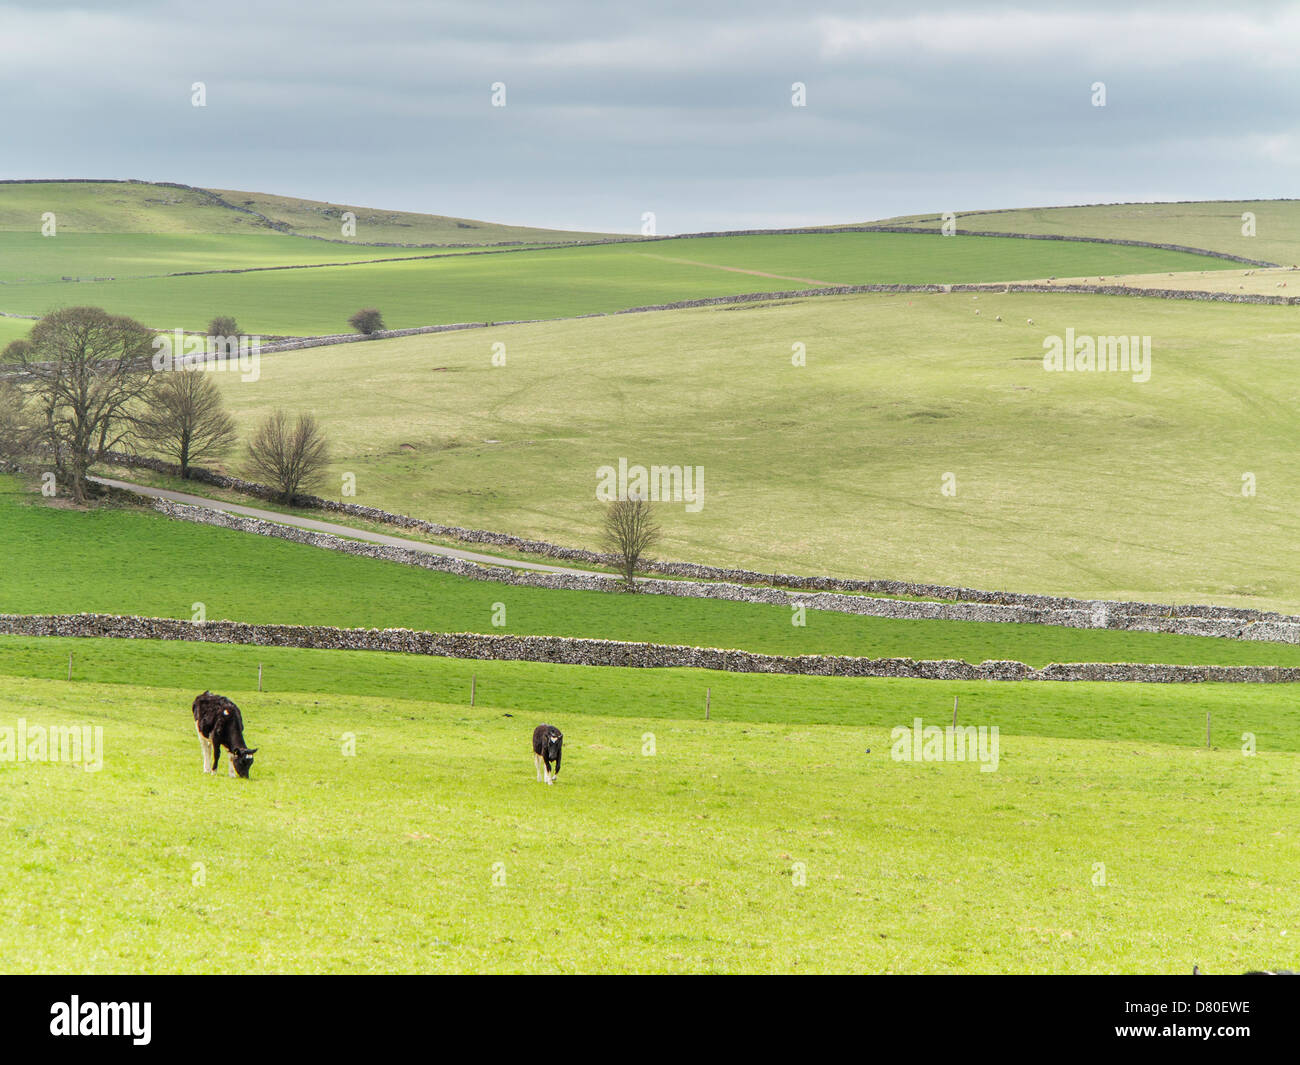 Pastoral view of cows and fields on the Peak District National Park, Derbyshire, England - Stock Image